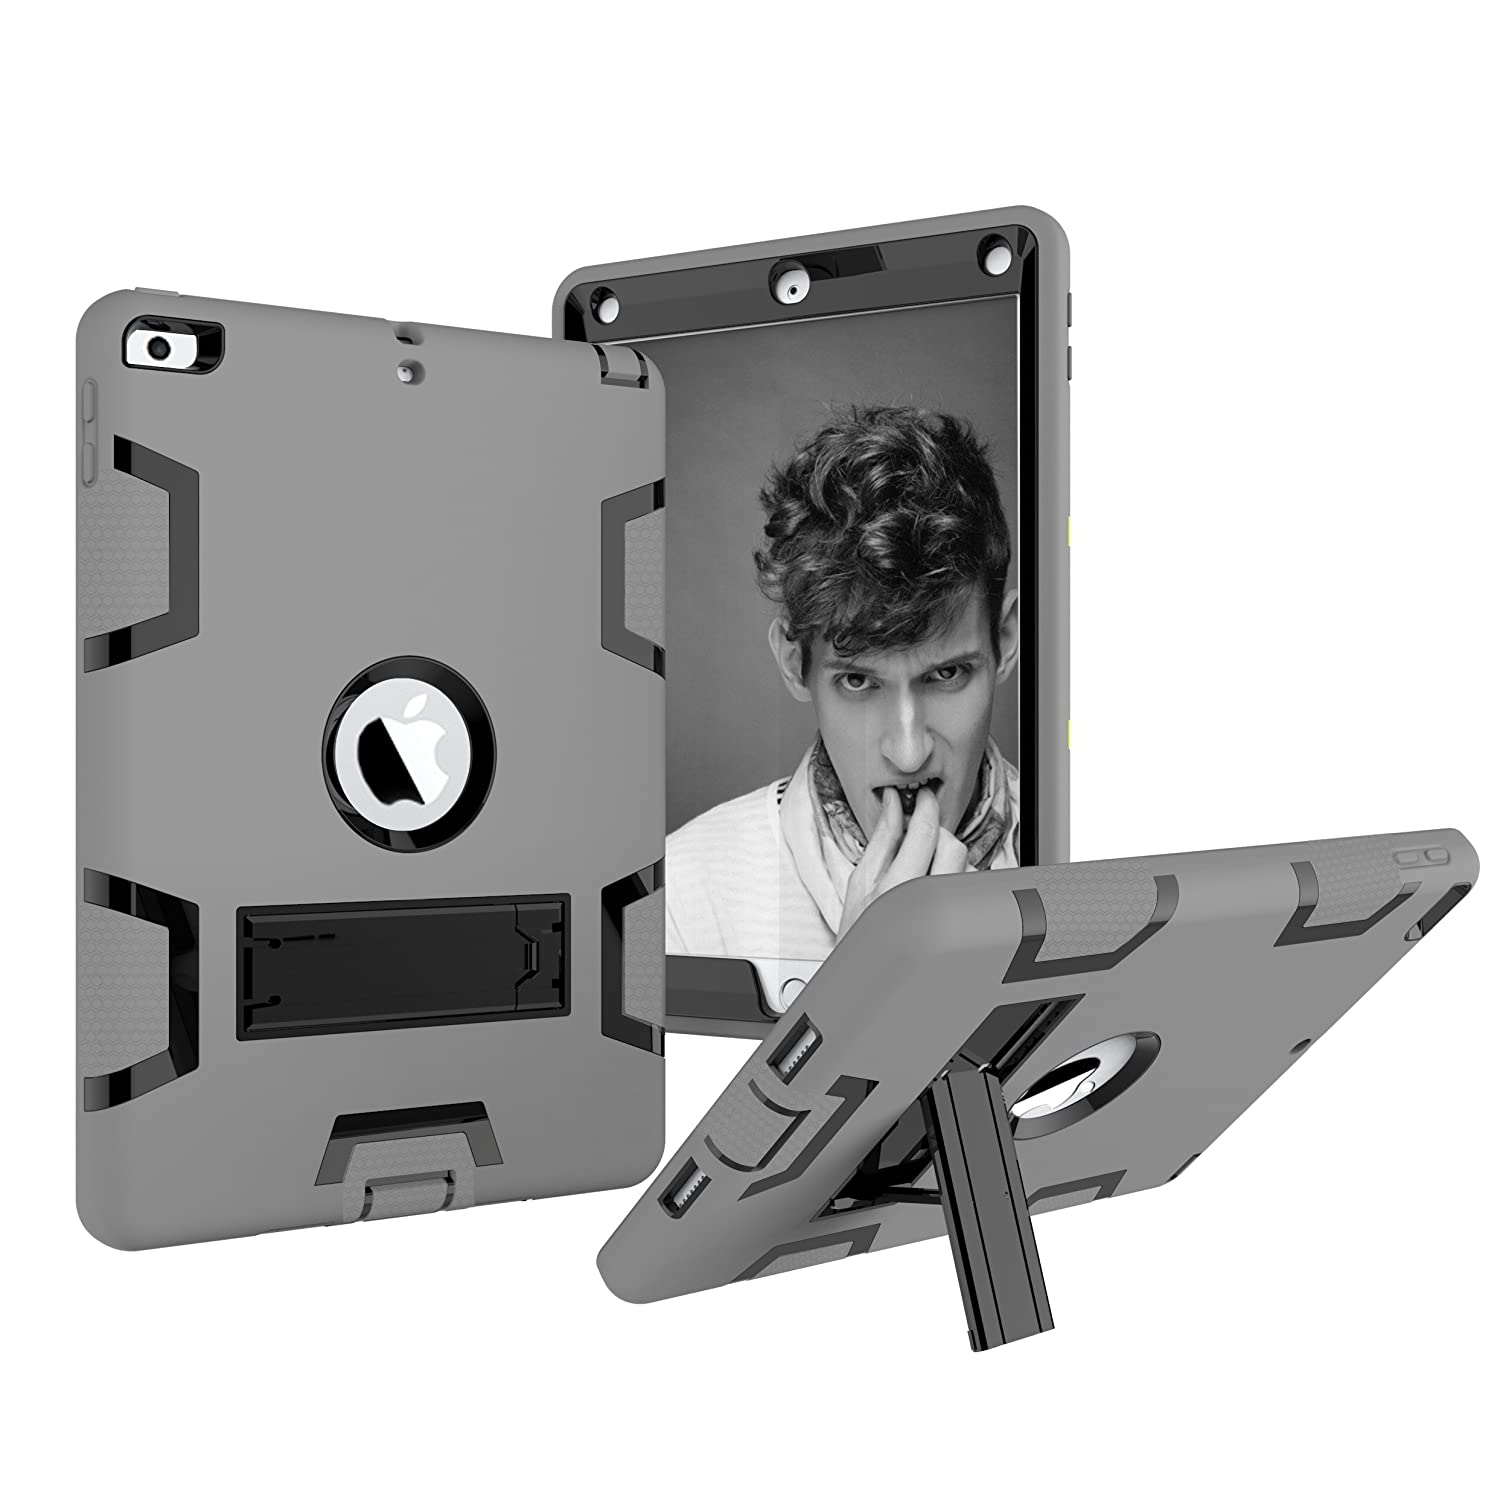 Hansin iPad 9.7 2017 custodia, resistente e robusta Heavy Duty Armour ammortizzatore antiurto Full Body protettiva con cavalletto per il nuovo Apple iPad 24,6 cm 5th Generation